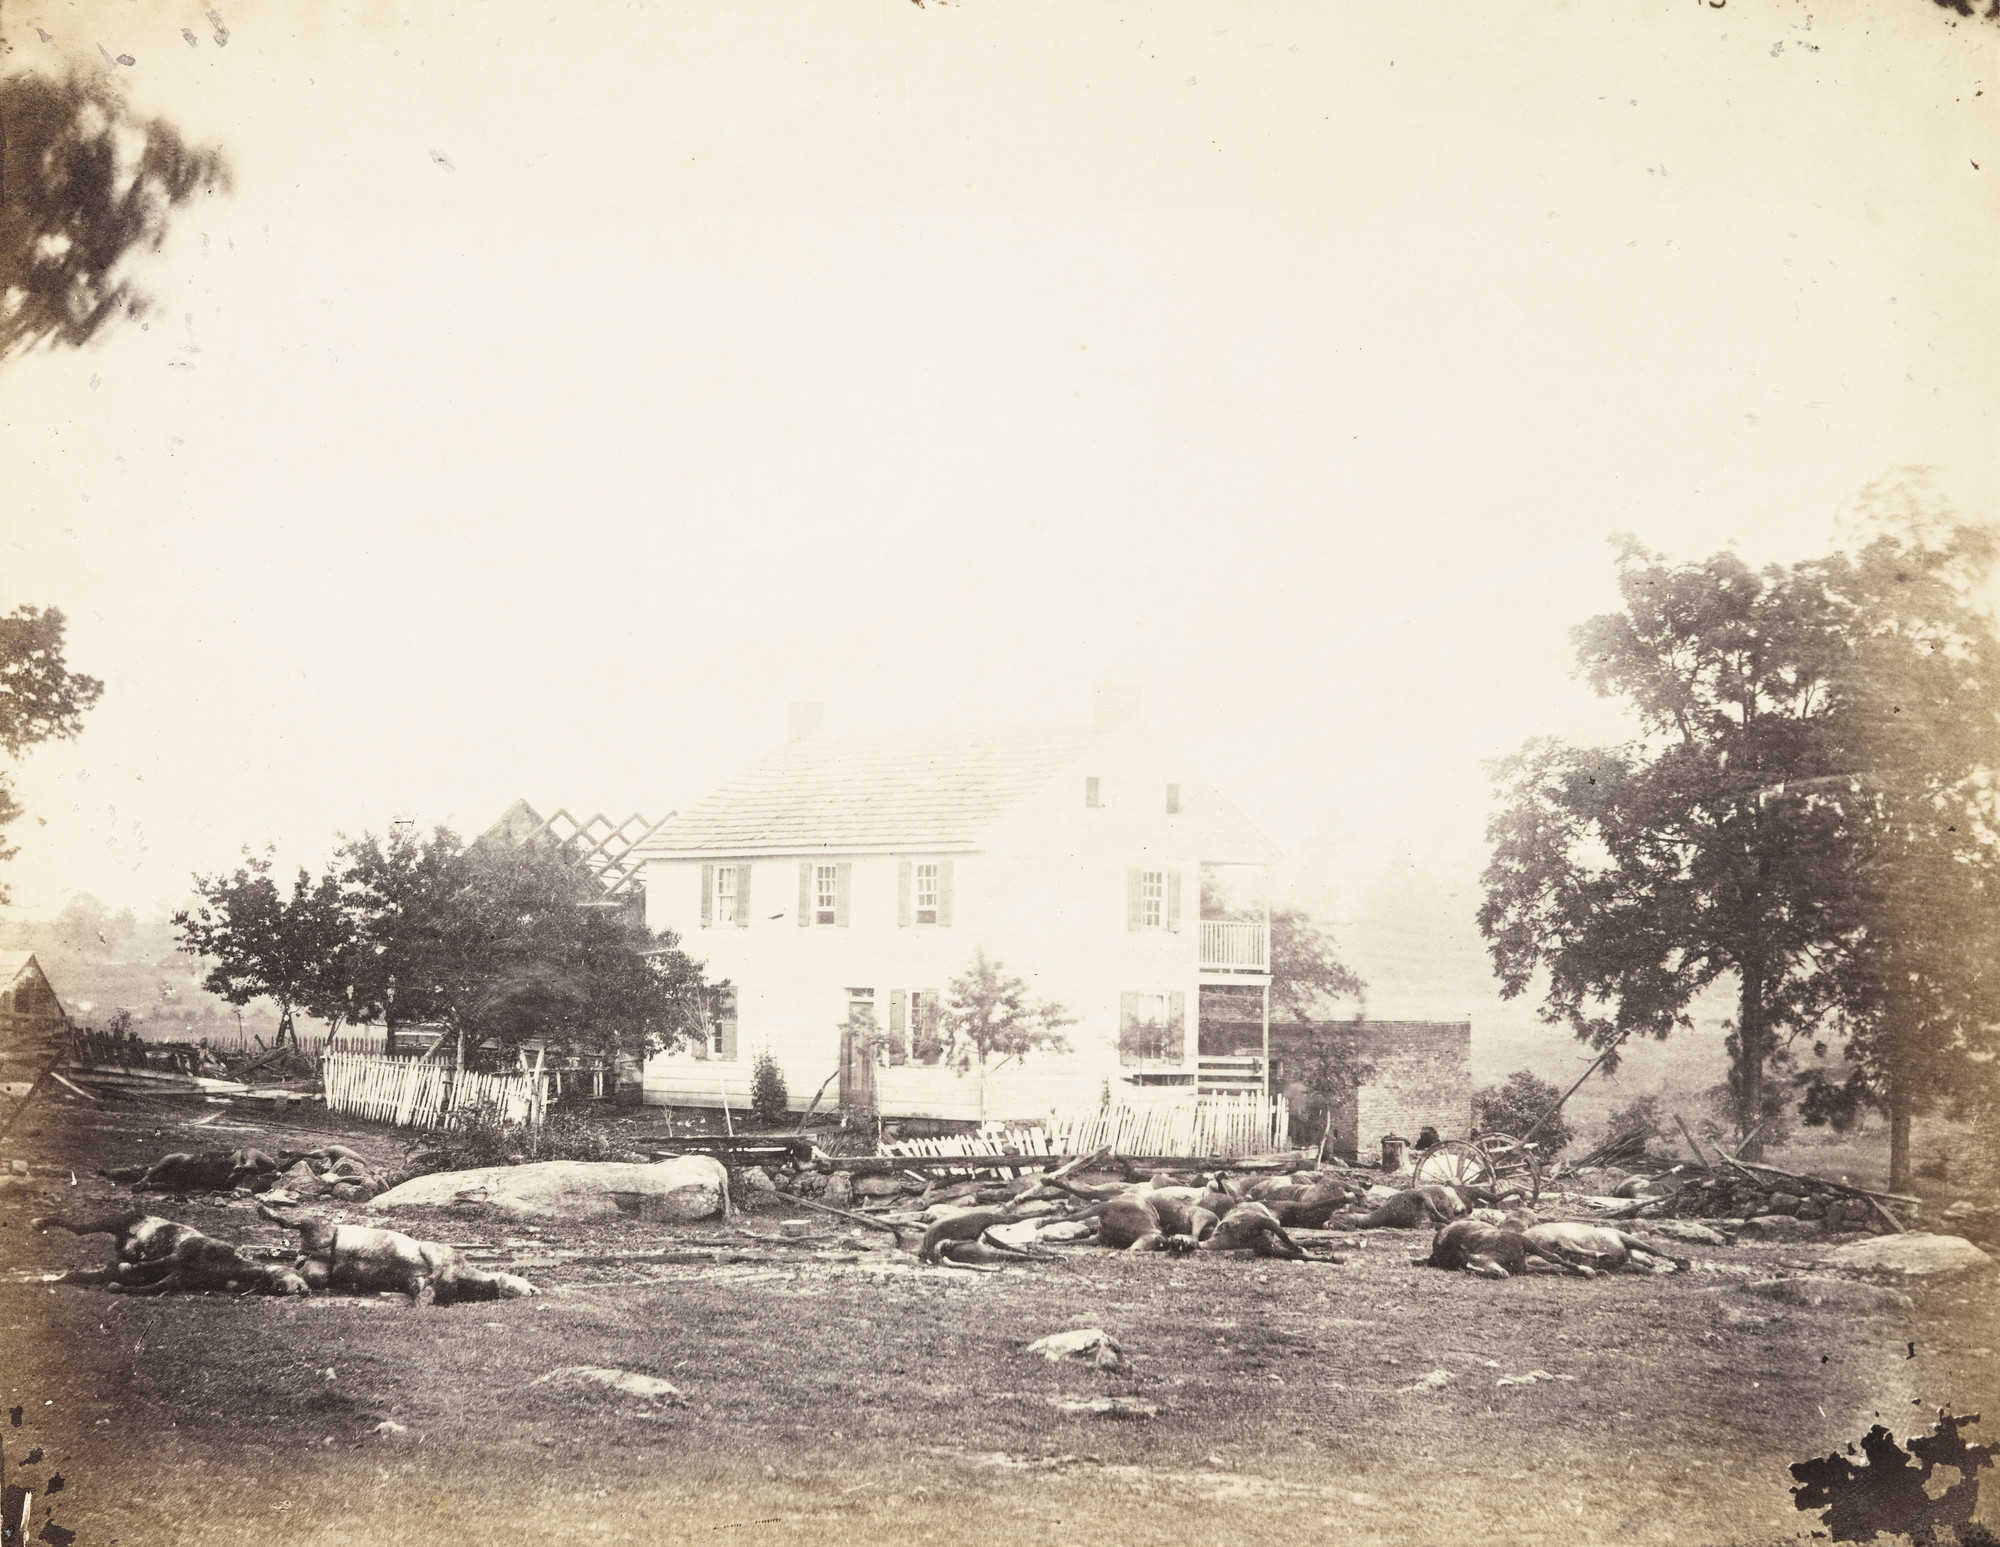 Alexander Gardner, Timothy O'Sullivan. Trossell's House, Battle-Field of Gettysburg. July, 1863